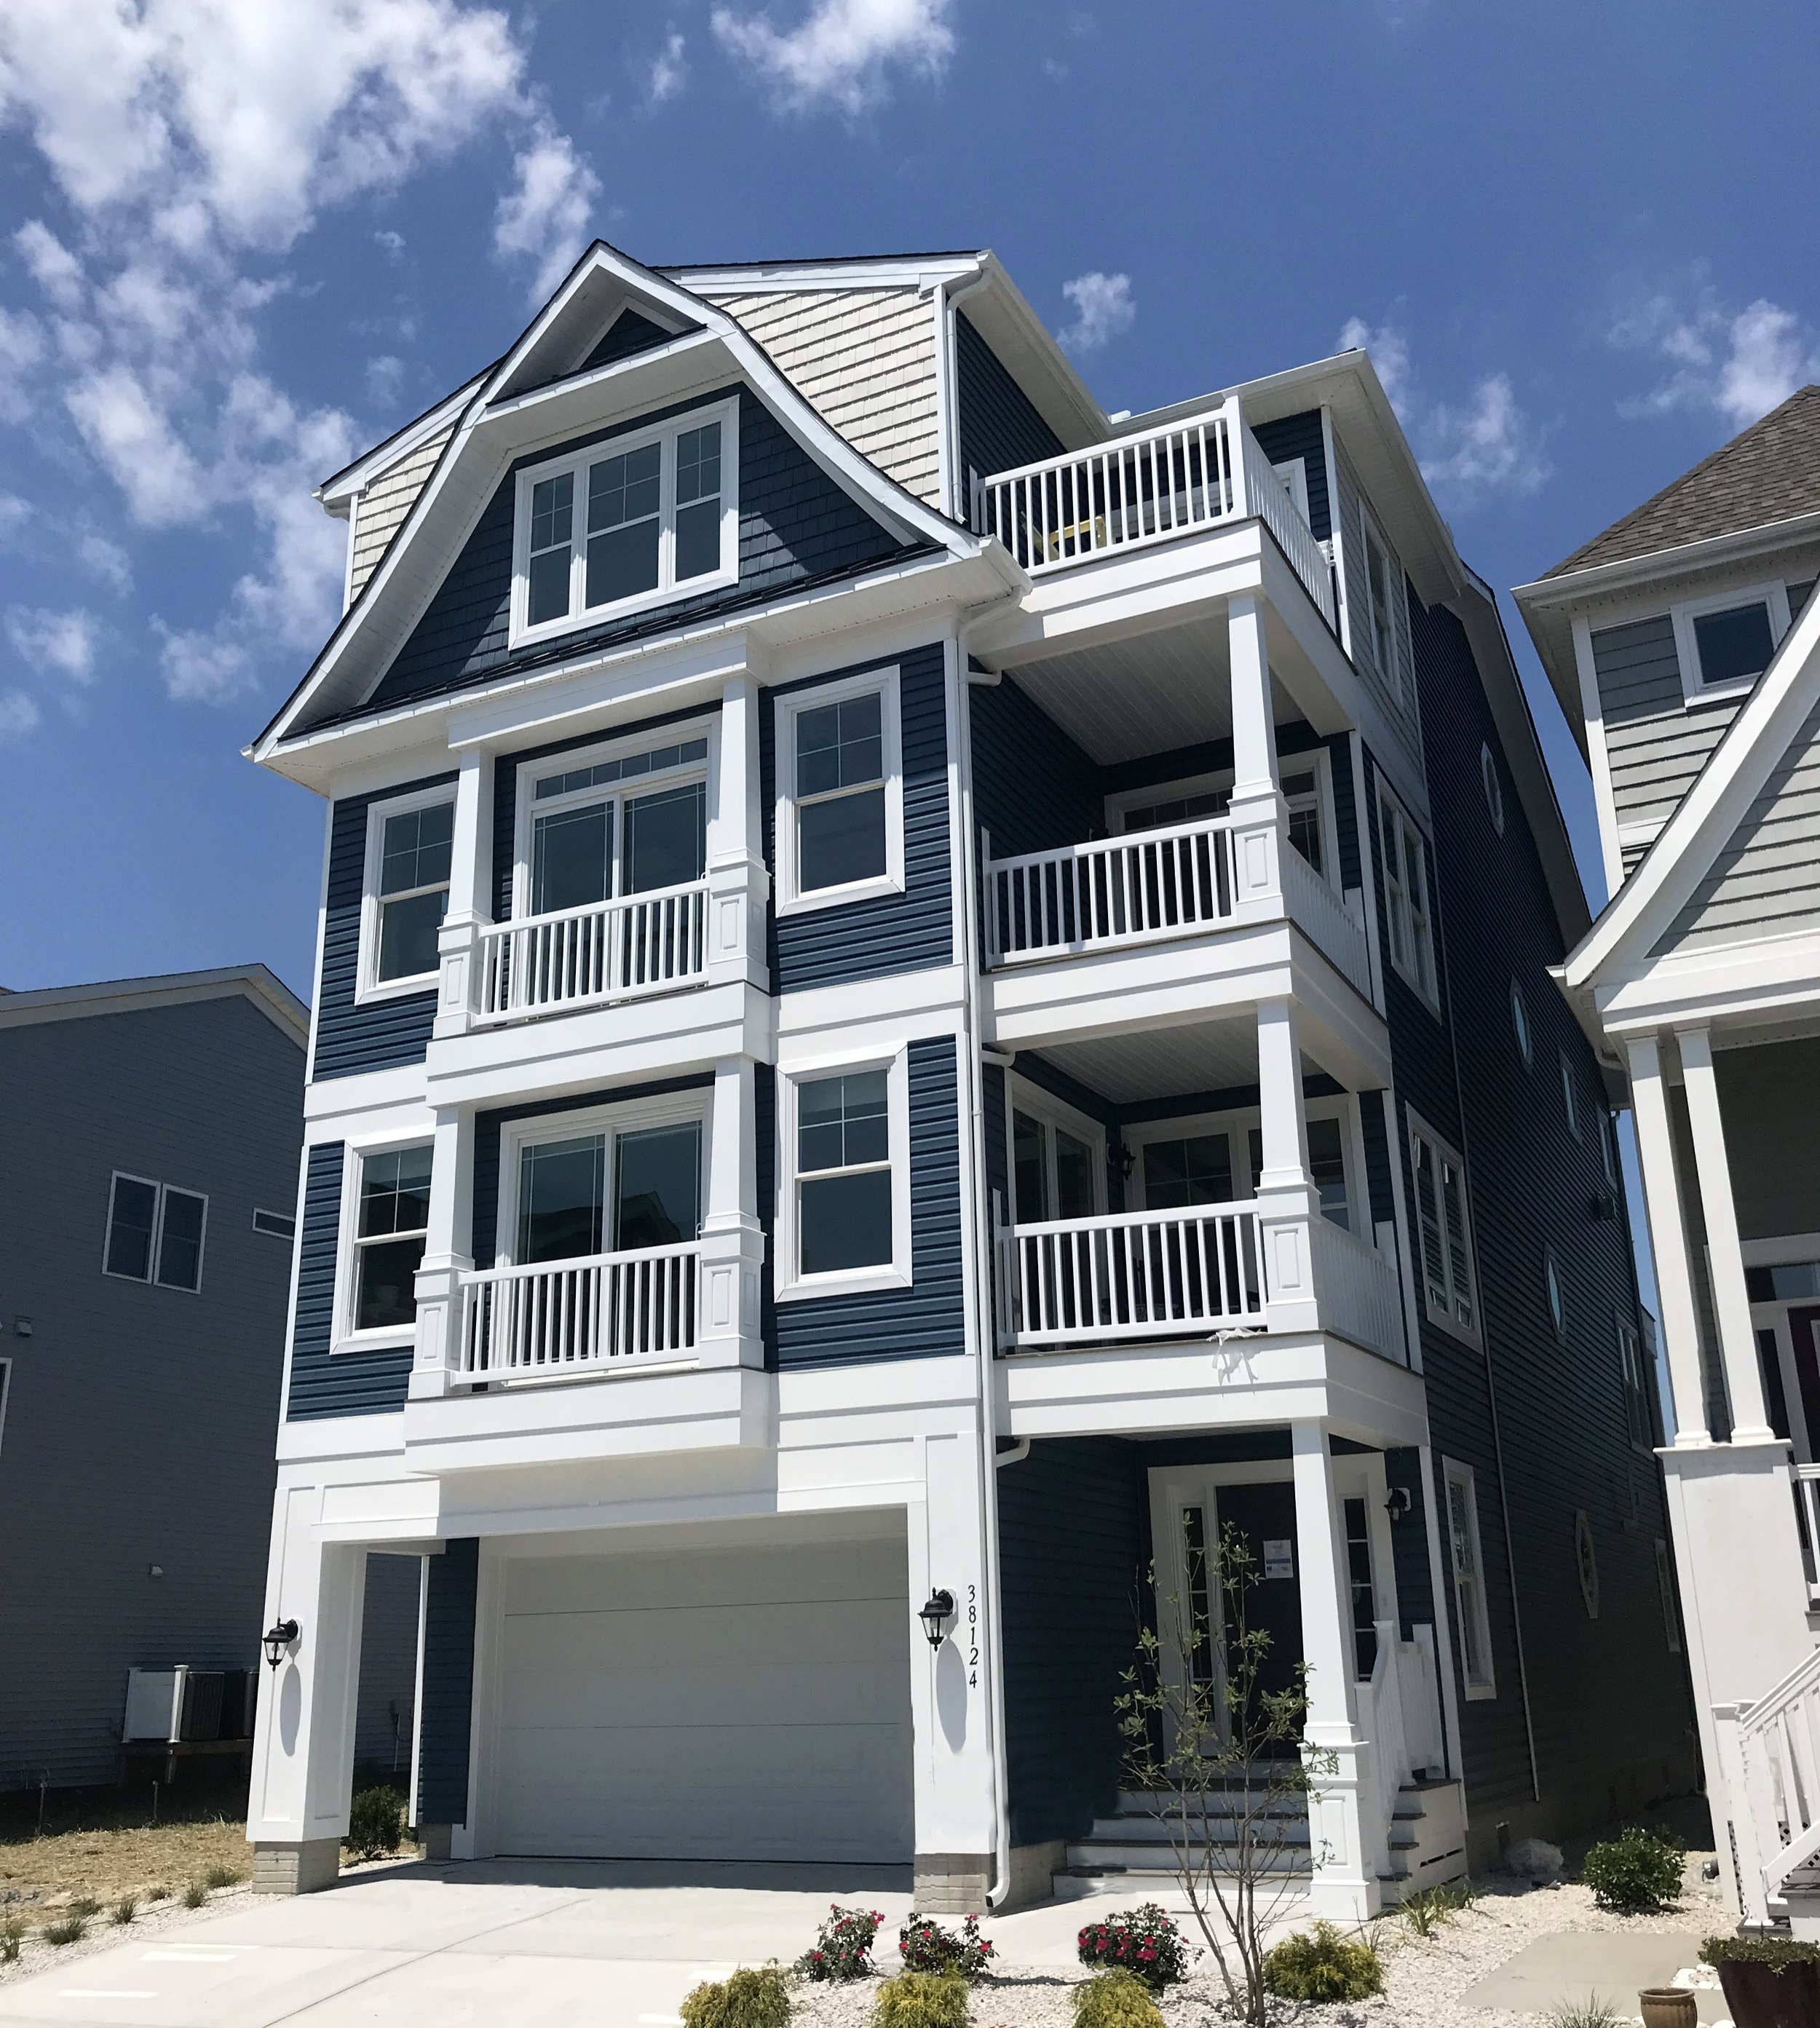 SUNSET HARBOUR 4 story homes - Ocean View, Delaware